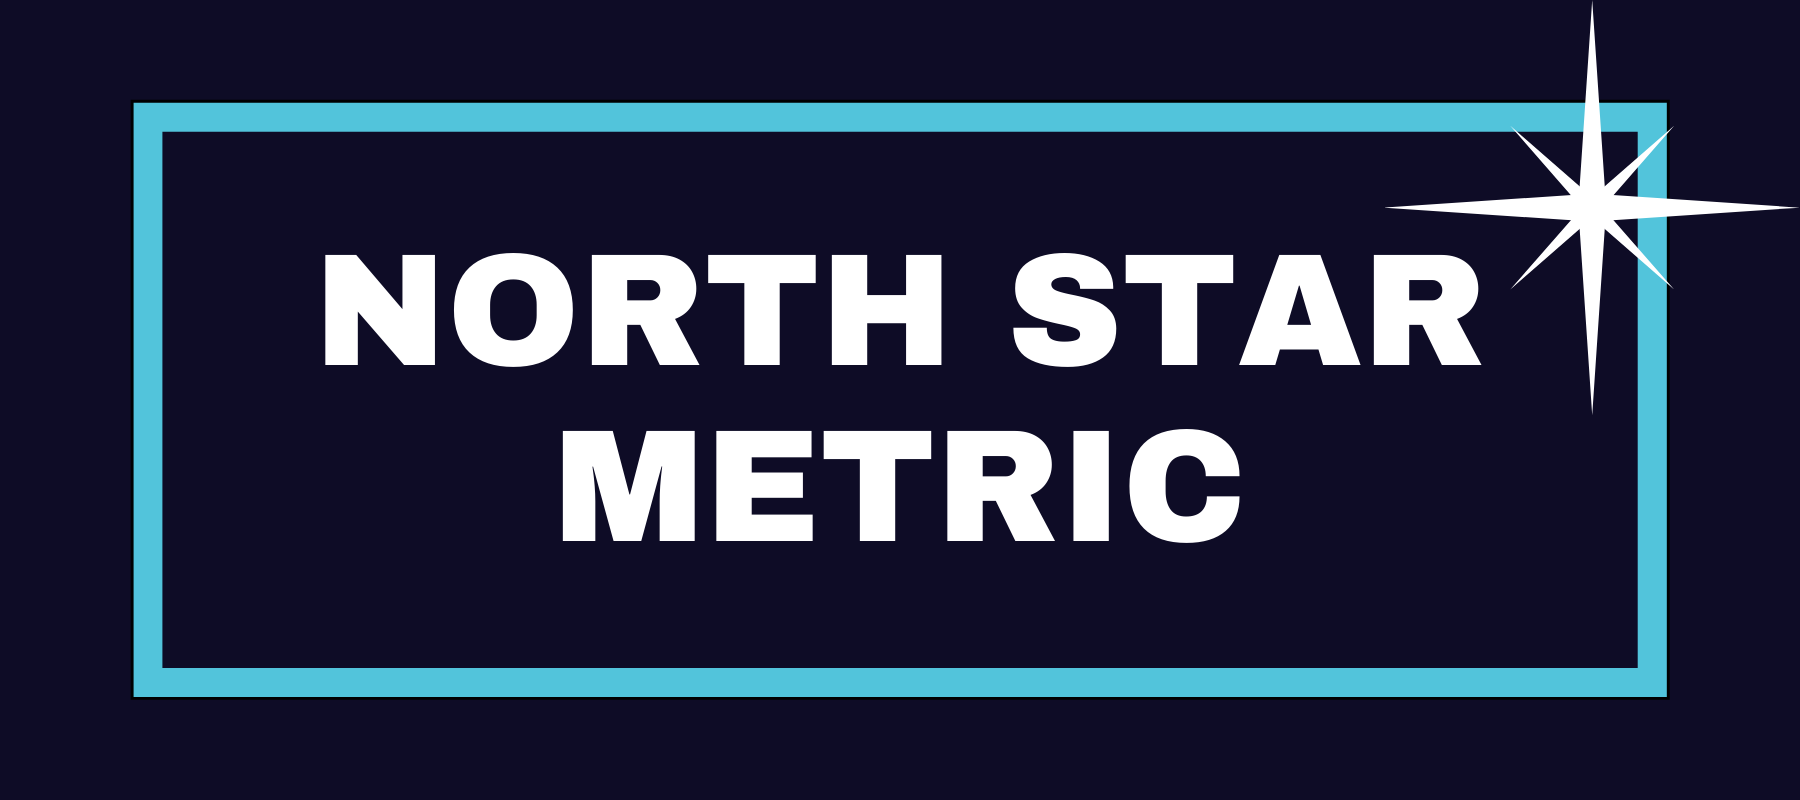 What is North Star metric?